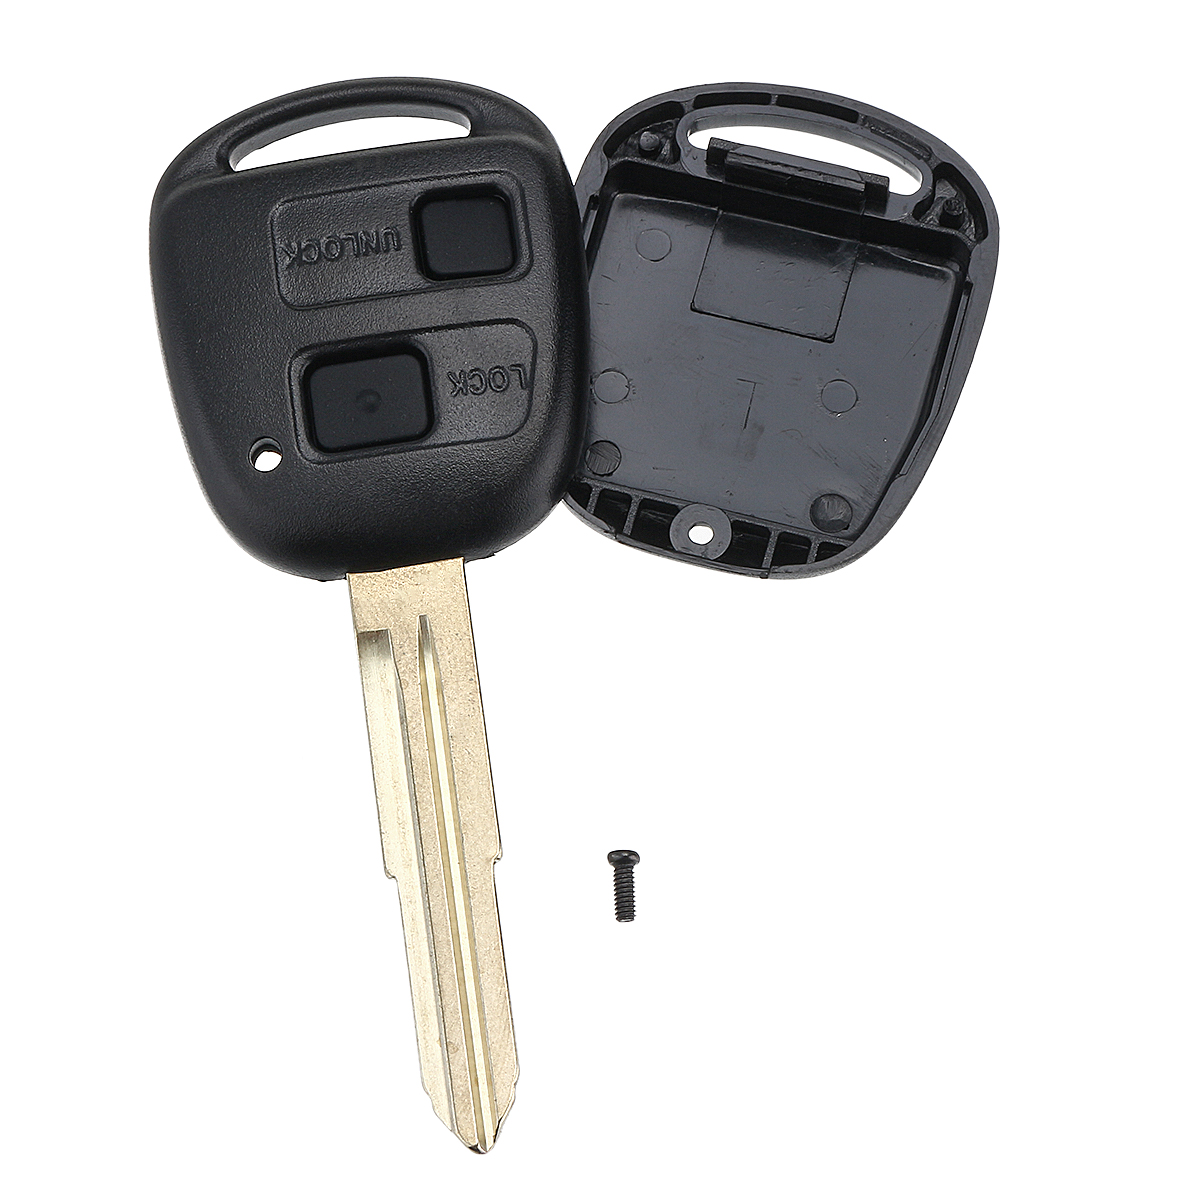 2 button remote key fob with switch battery pad for toyota. Black Bedroom Furniture Sets. Home Design Ideas